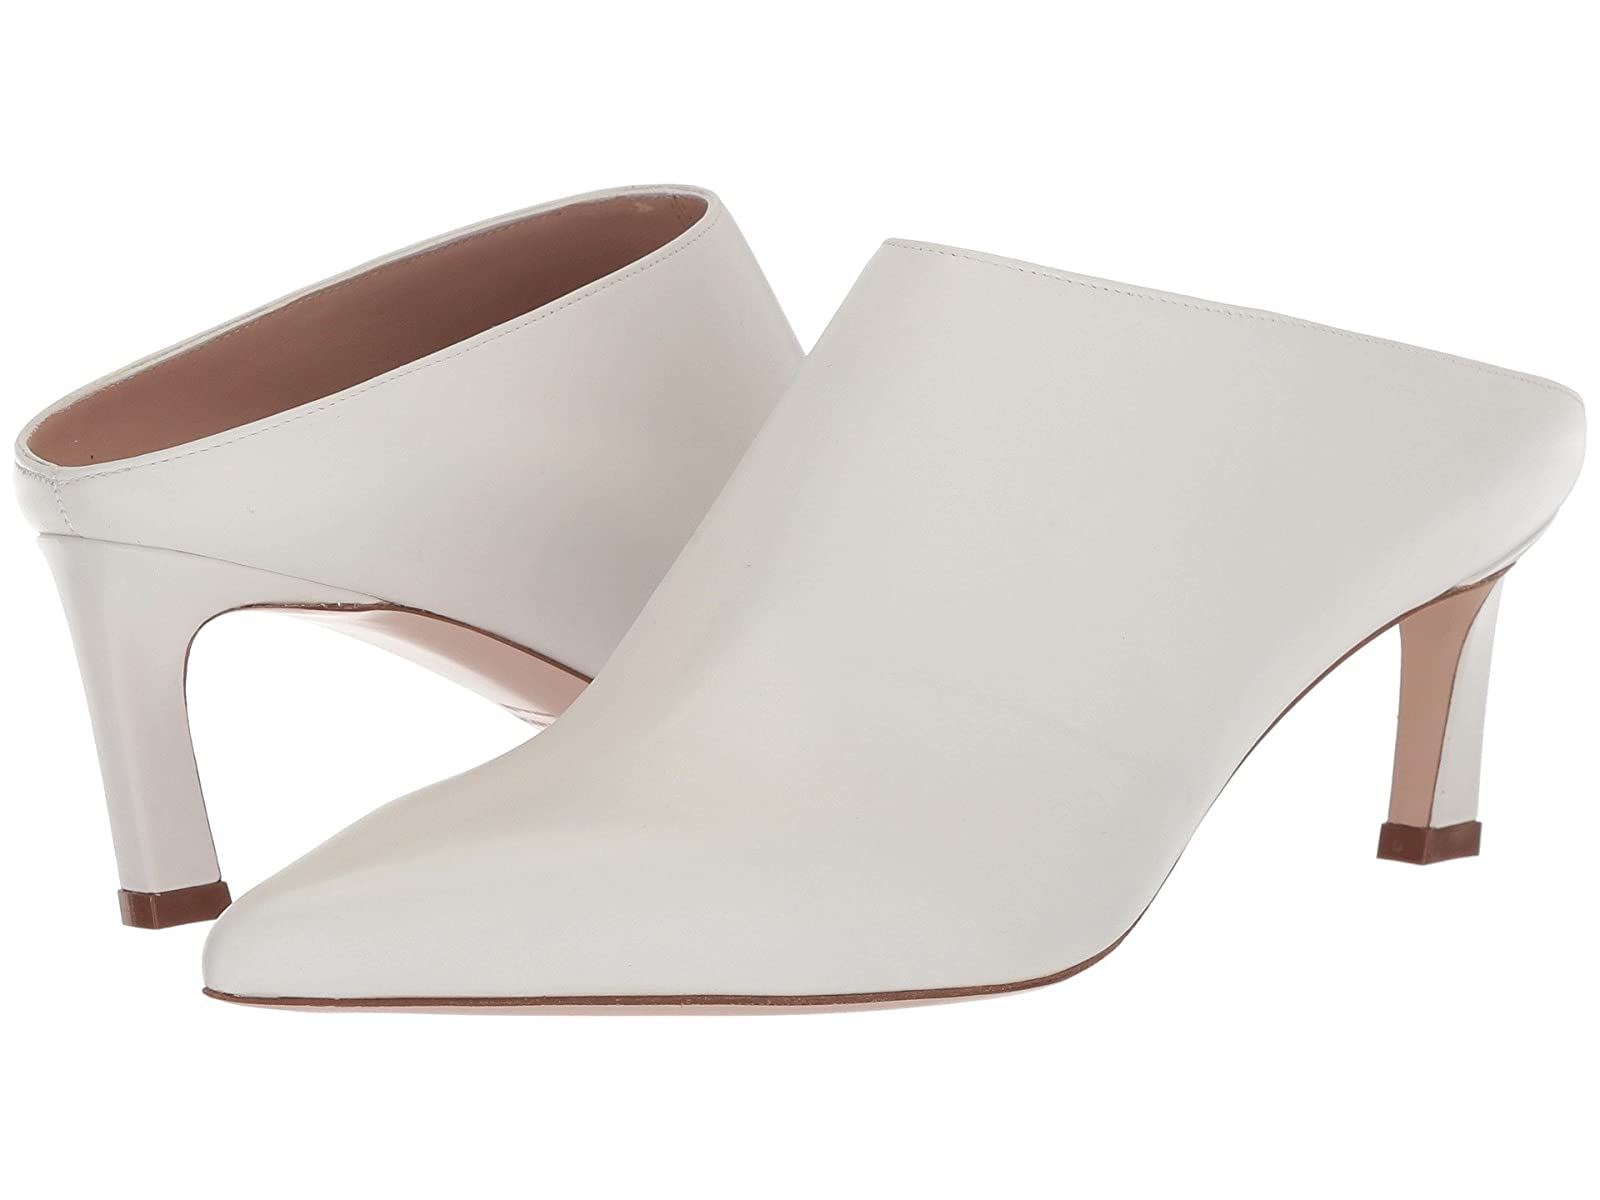 Stuart Weitzman MiraAtmospheric grades have affordable shoes